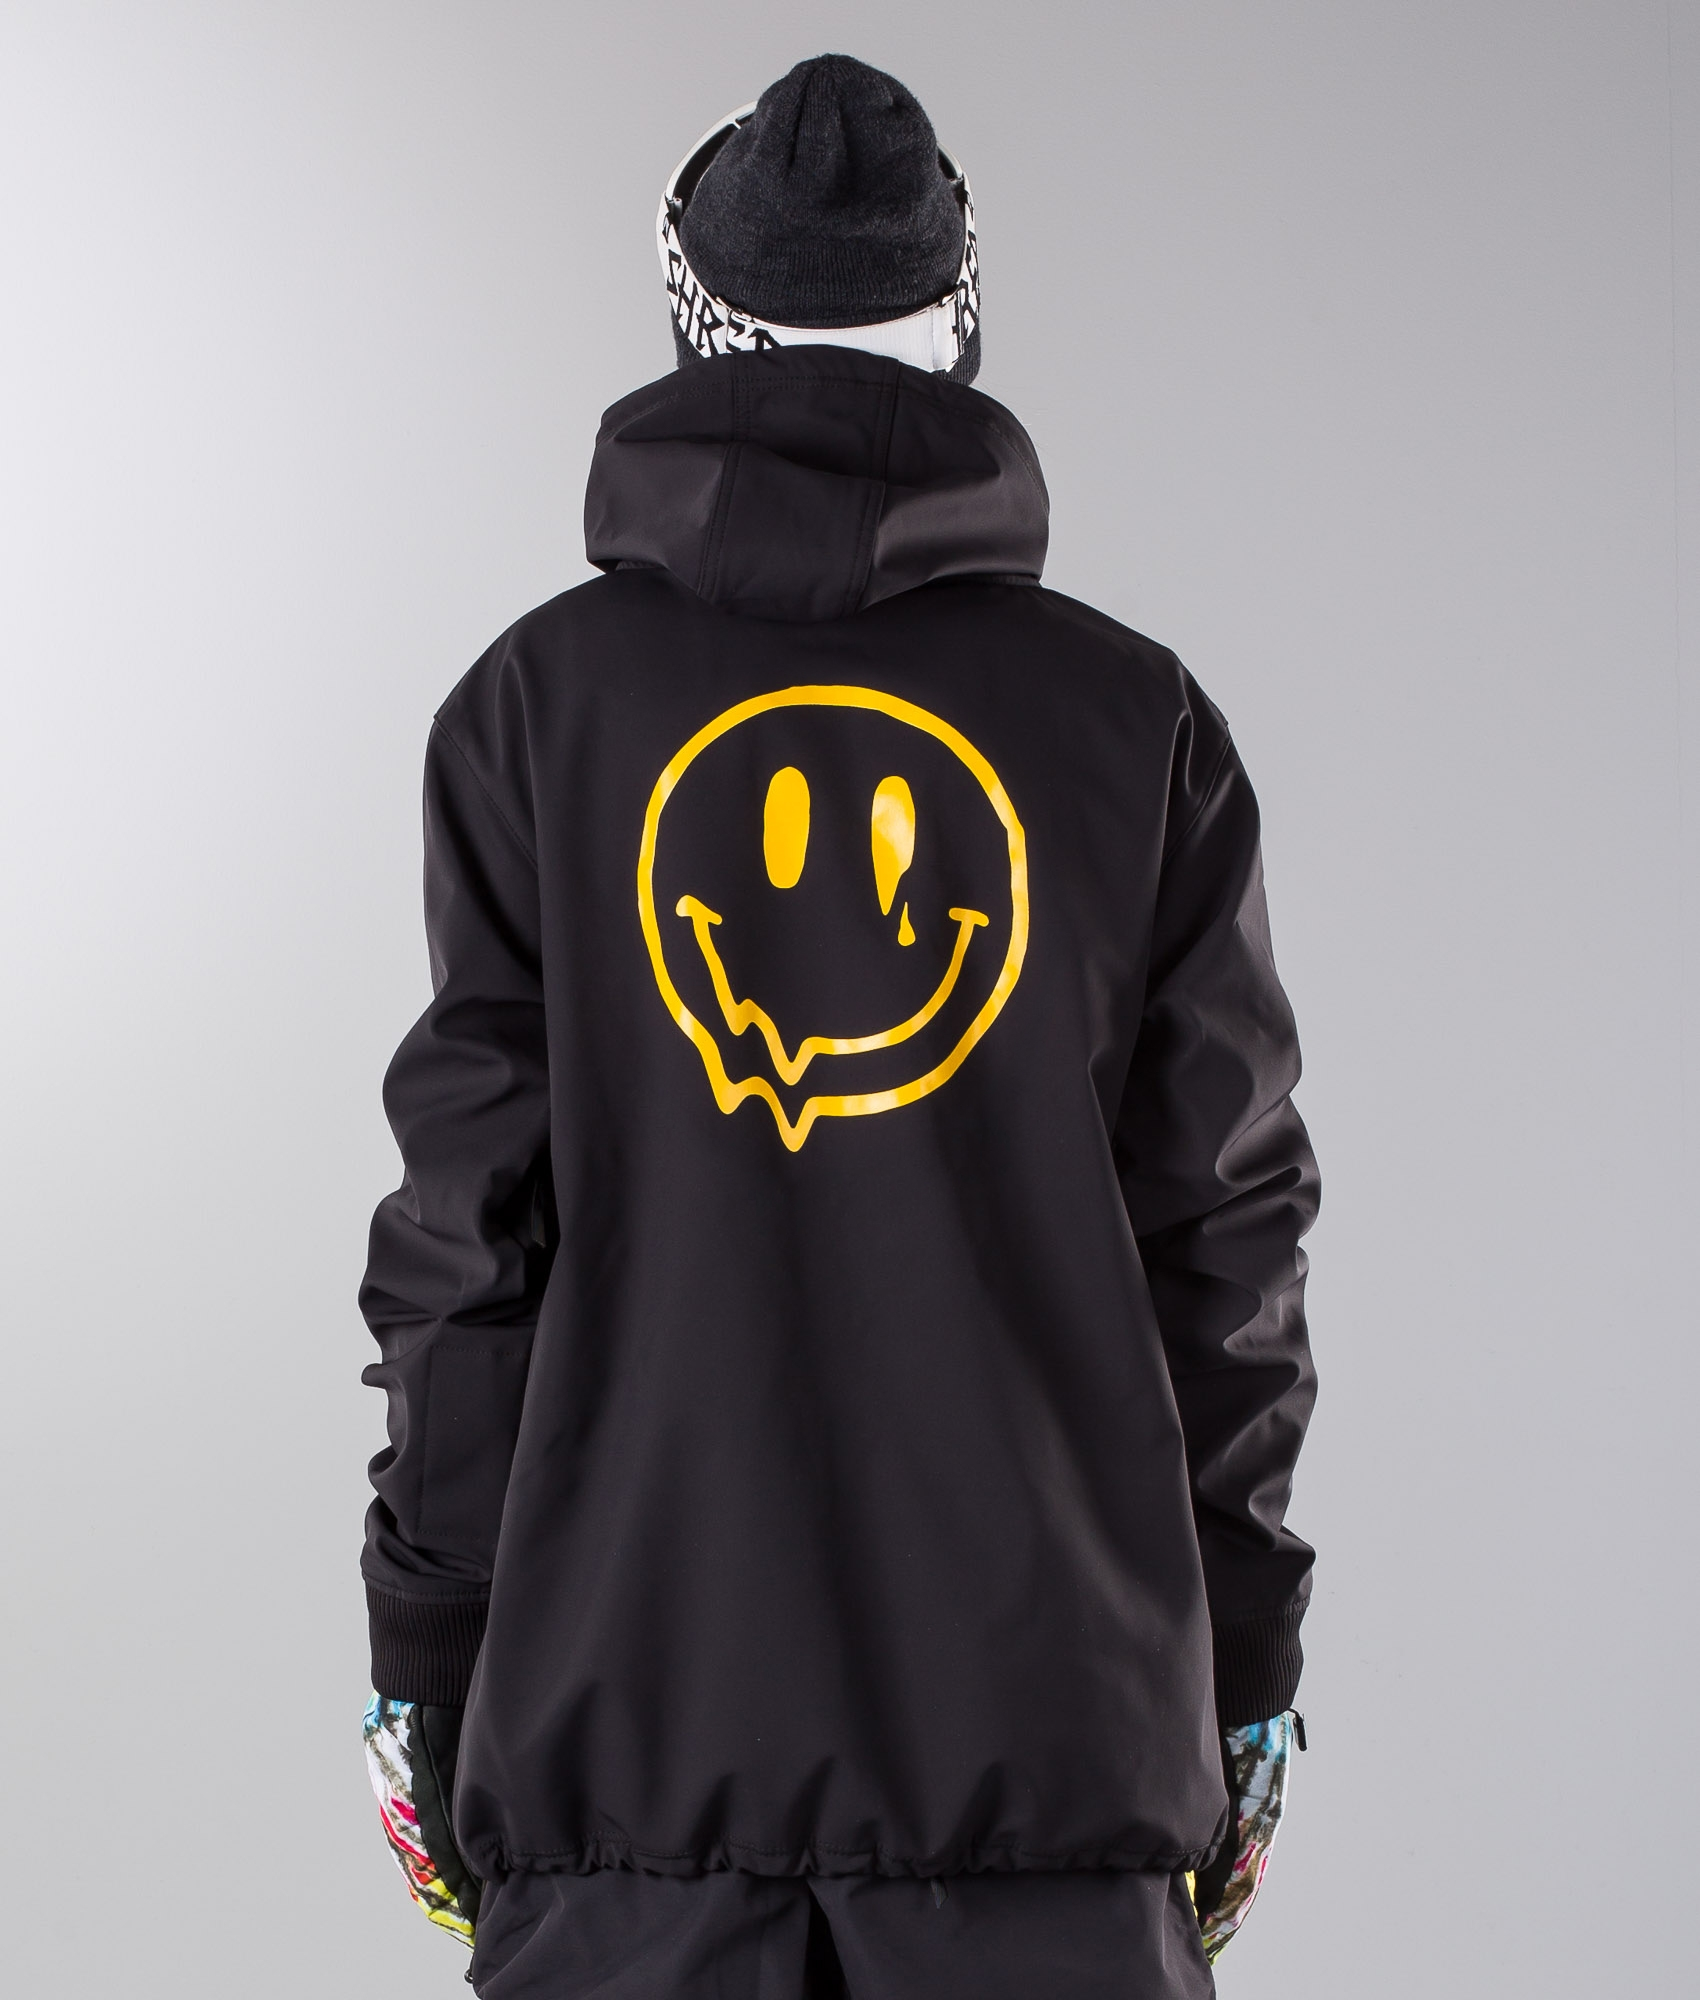 Kb it Smiley Snowboard Black Ridestore Da Dope Giacca lc3TFJK1